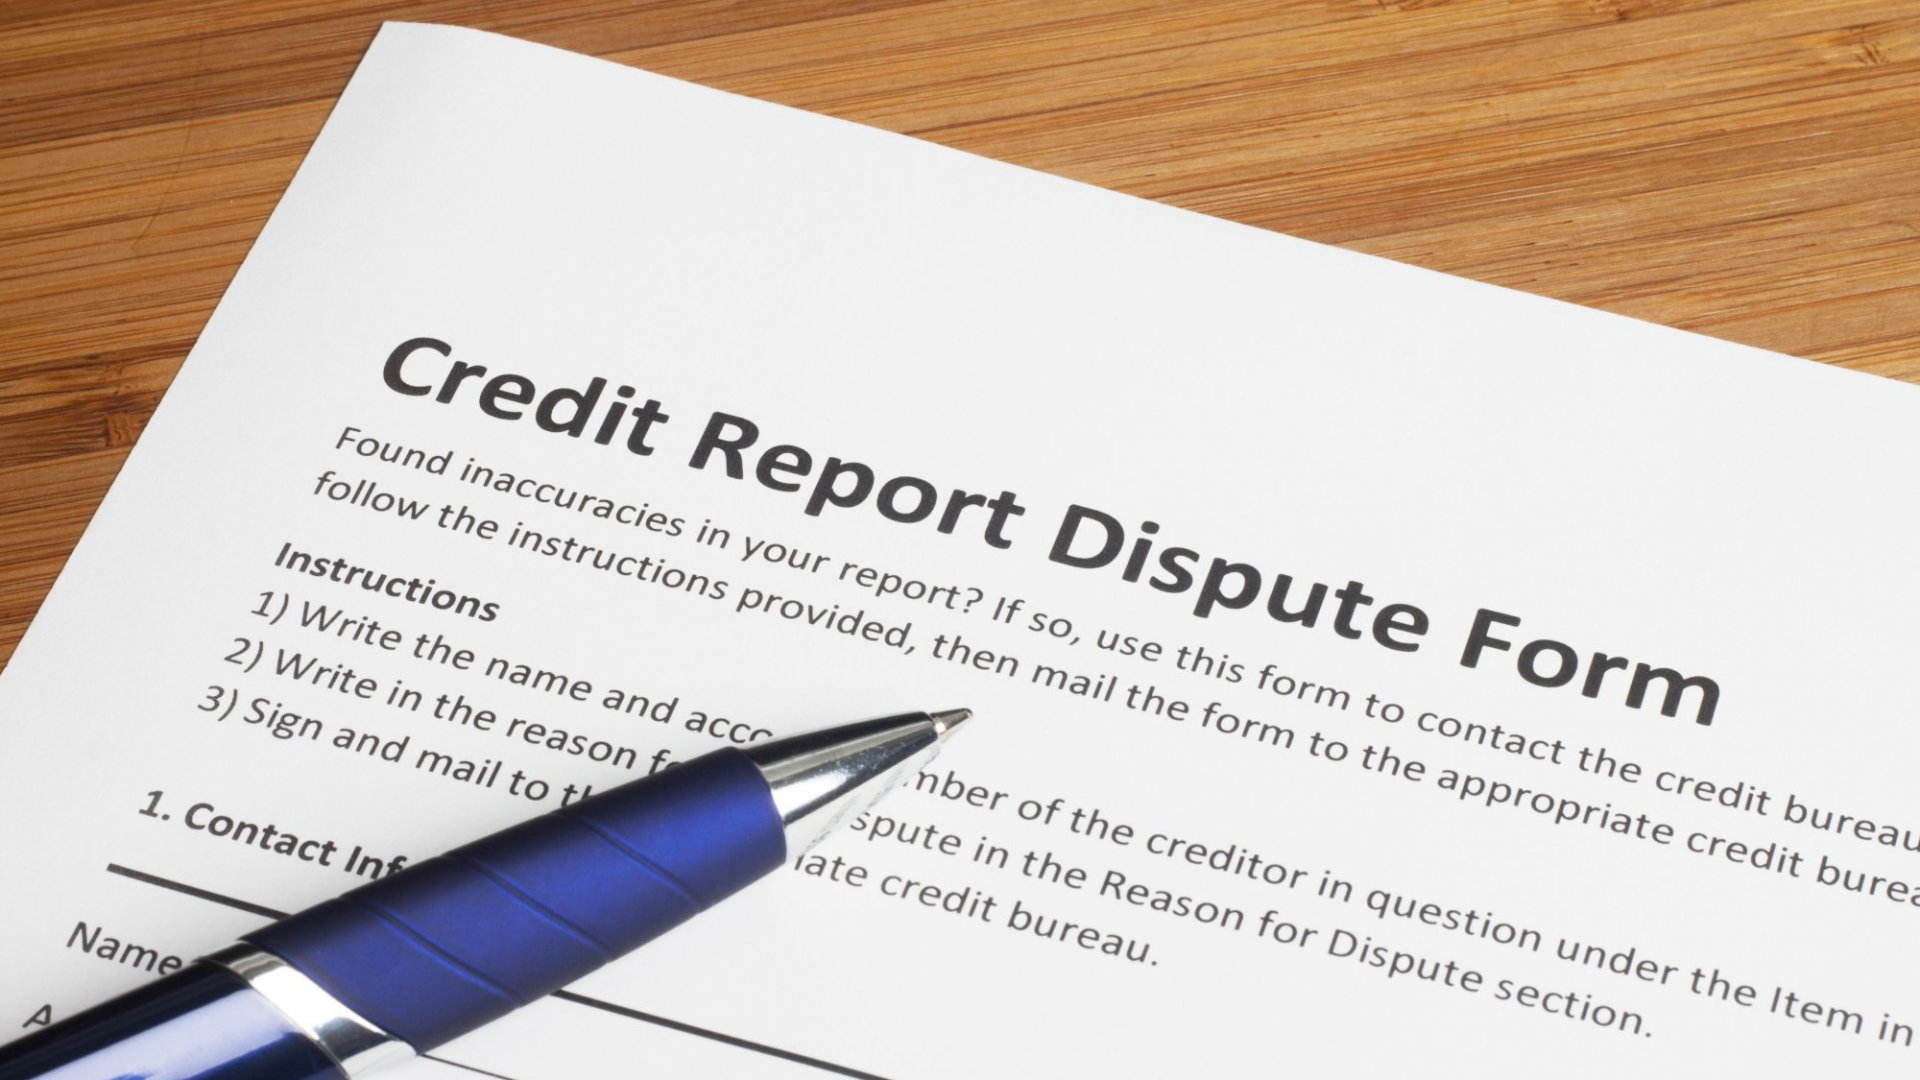 Credit Agencies Are Making Changes That Could Save Your Credit Score